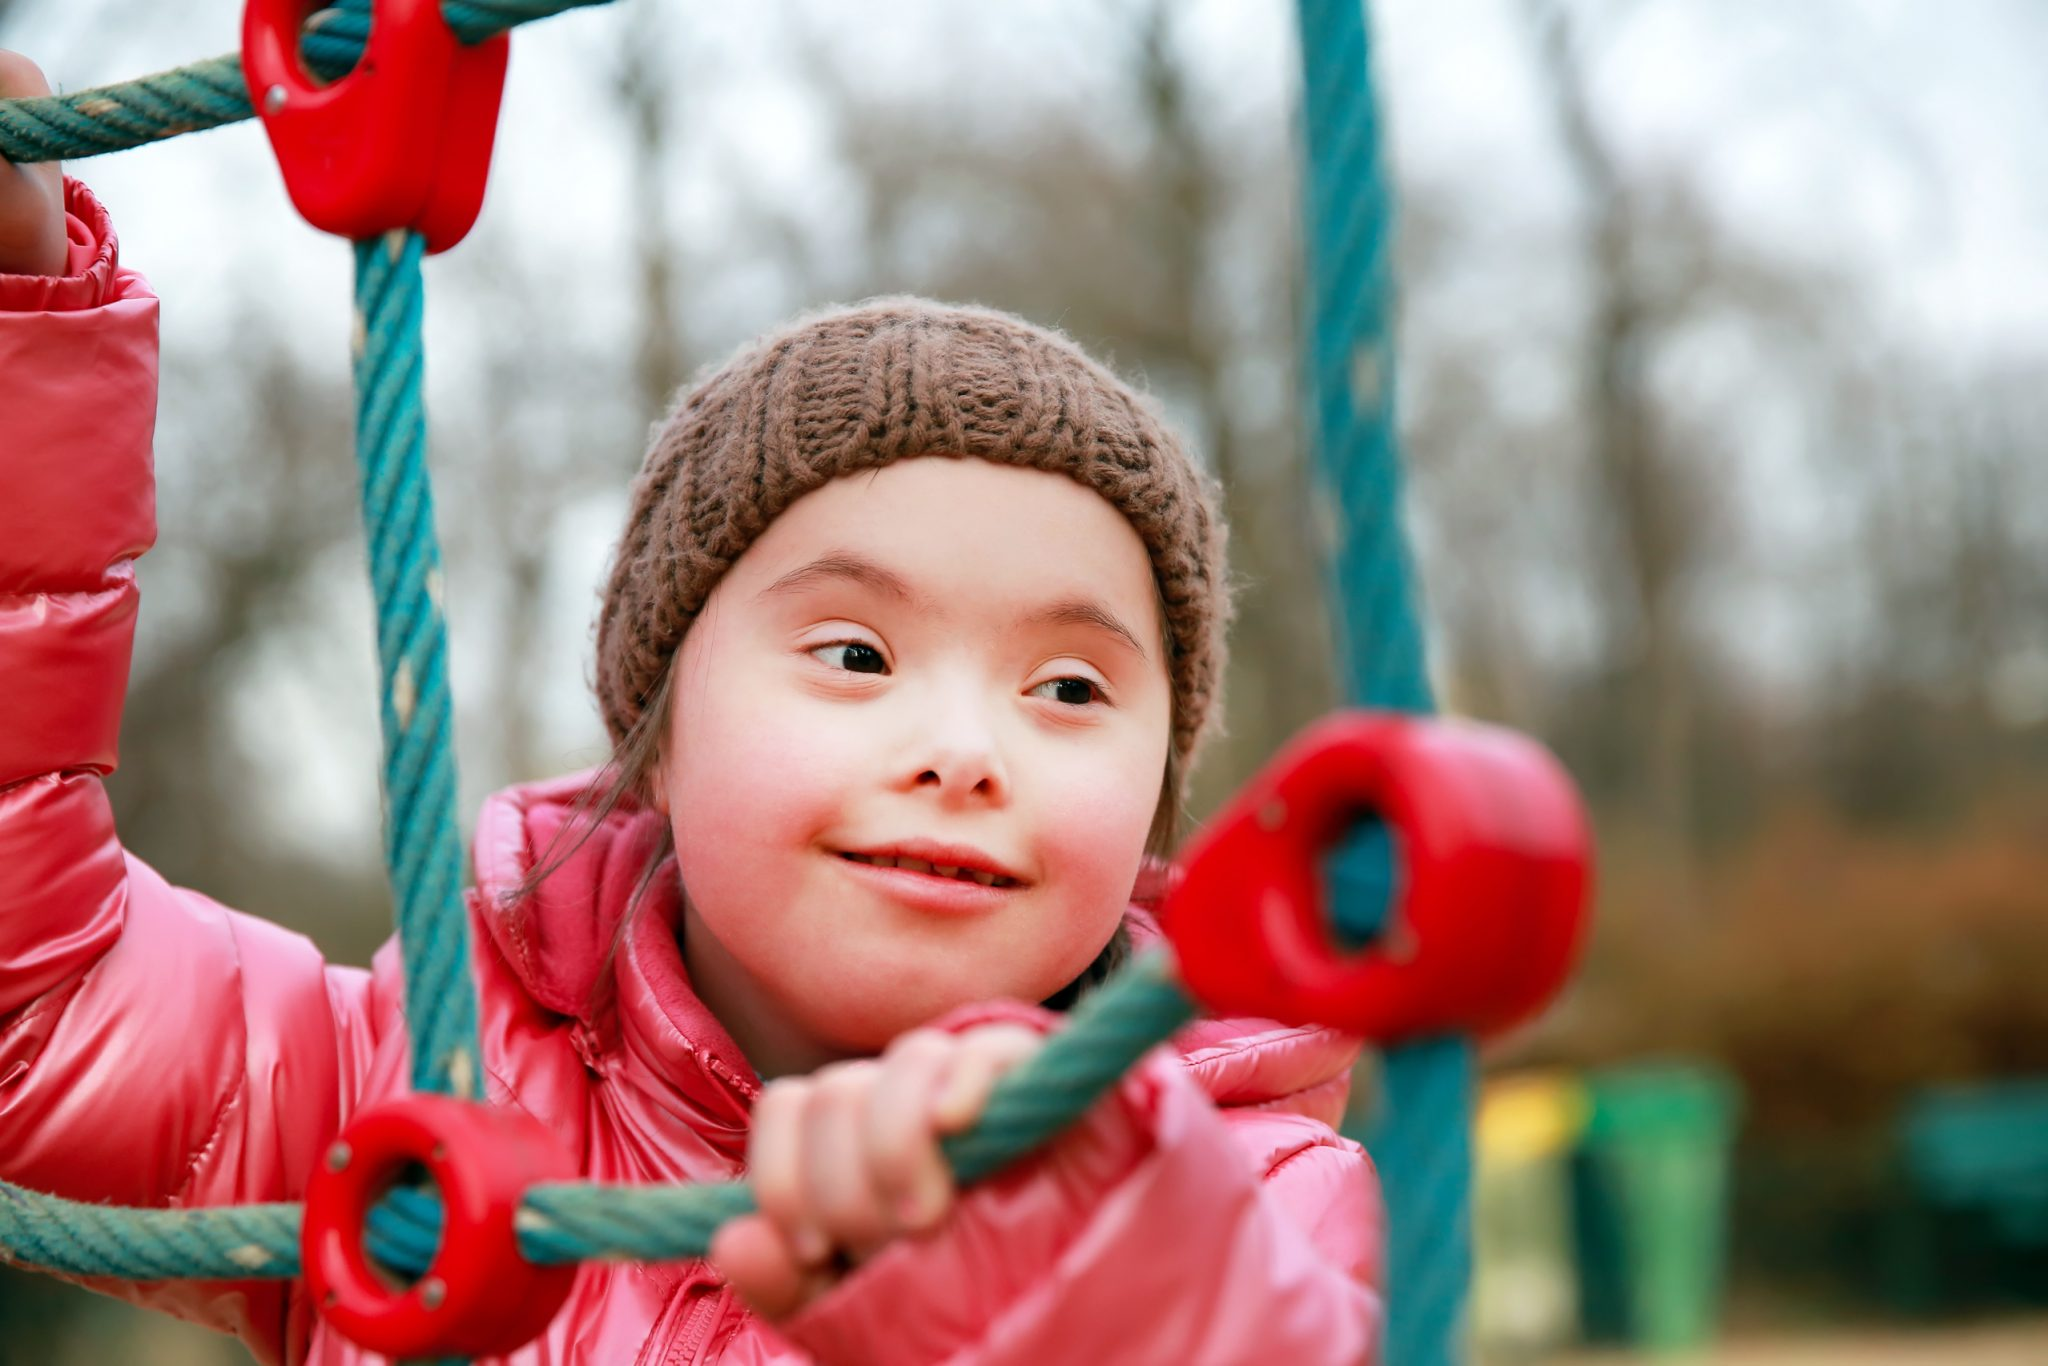 Portrait of beautiful girl with downs syndrome playing in a playground